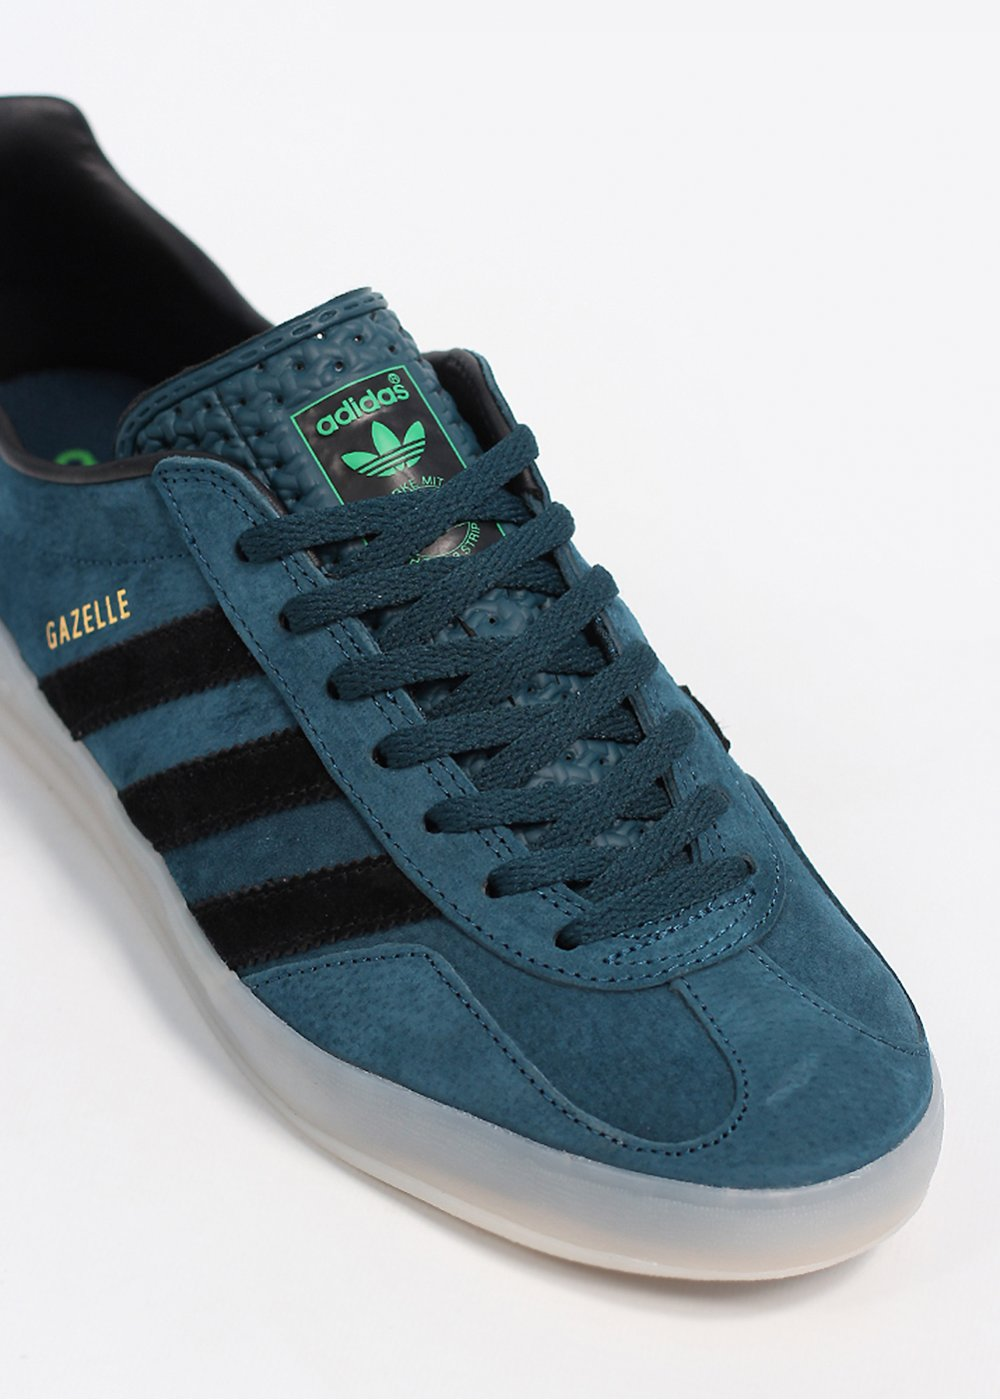 adidas gazelle blue and green